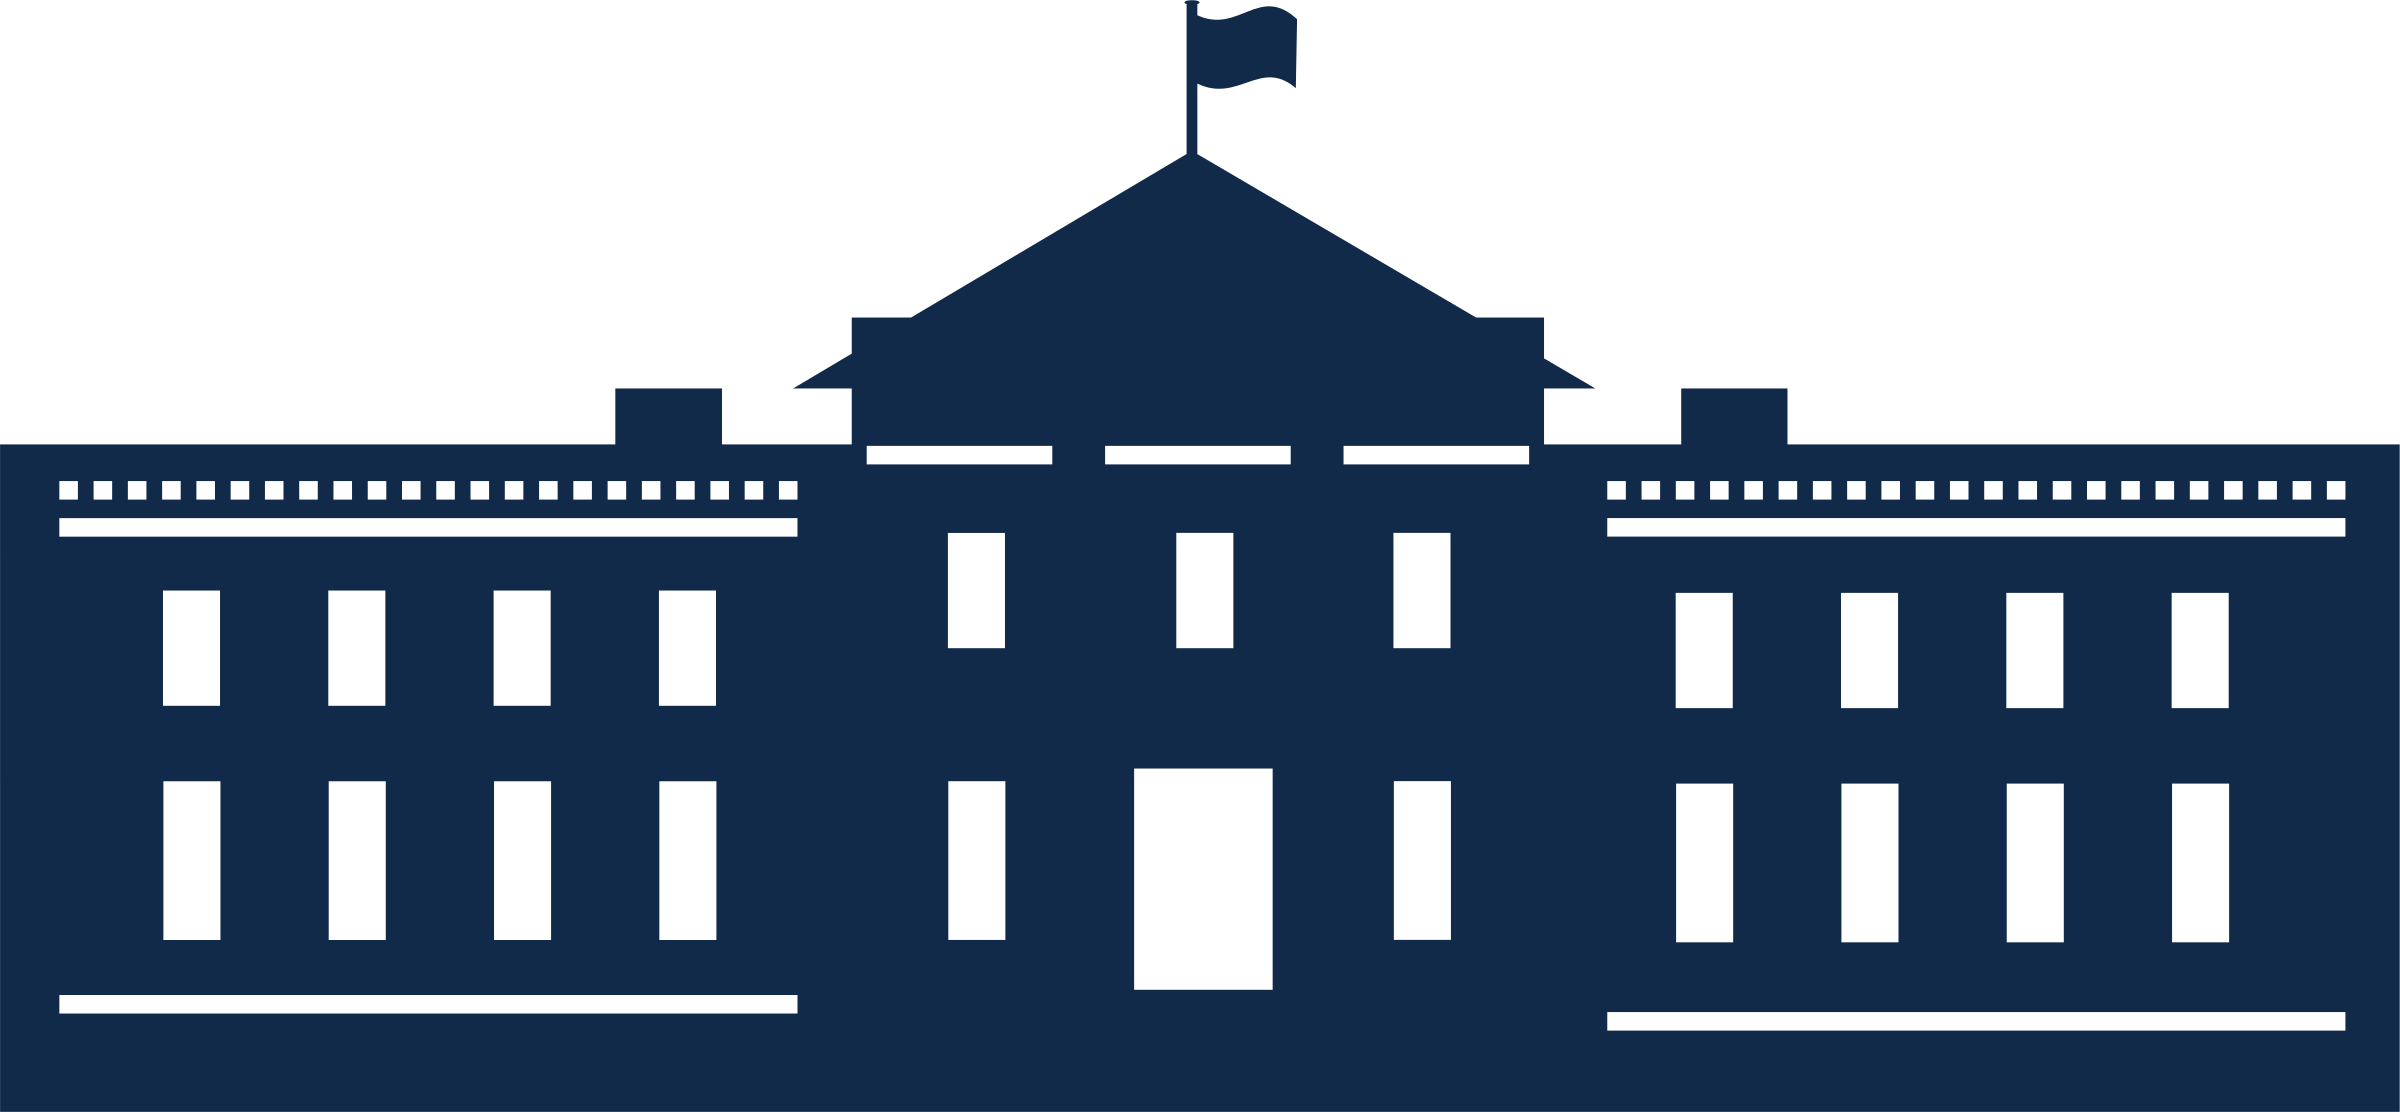 White house clipart clipart transparent library 28+ Collection of White House Clipart Png | High quality, free ... clipart transparent library